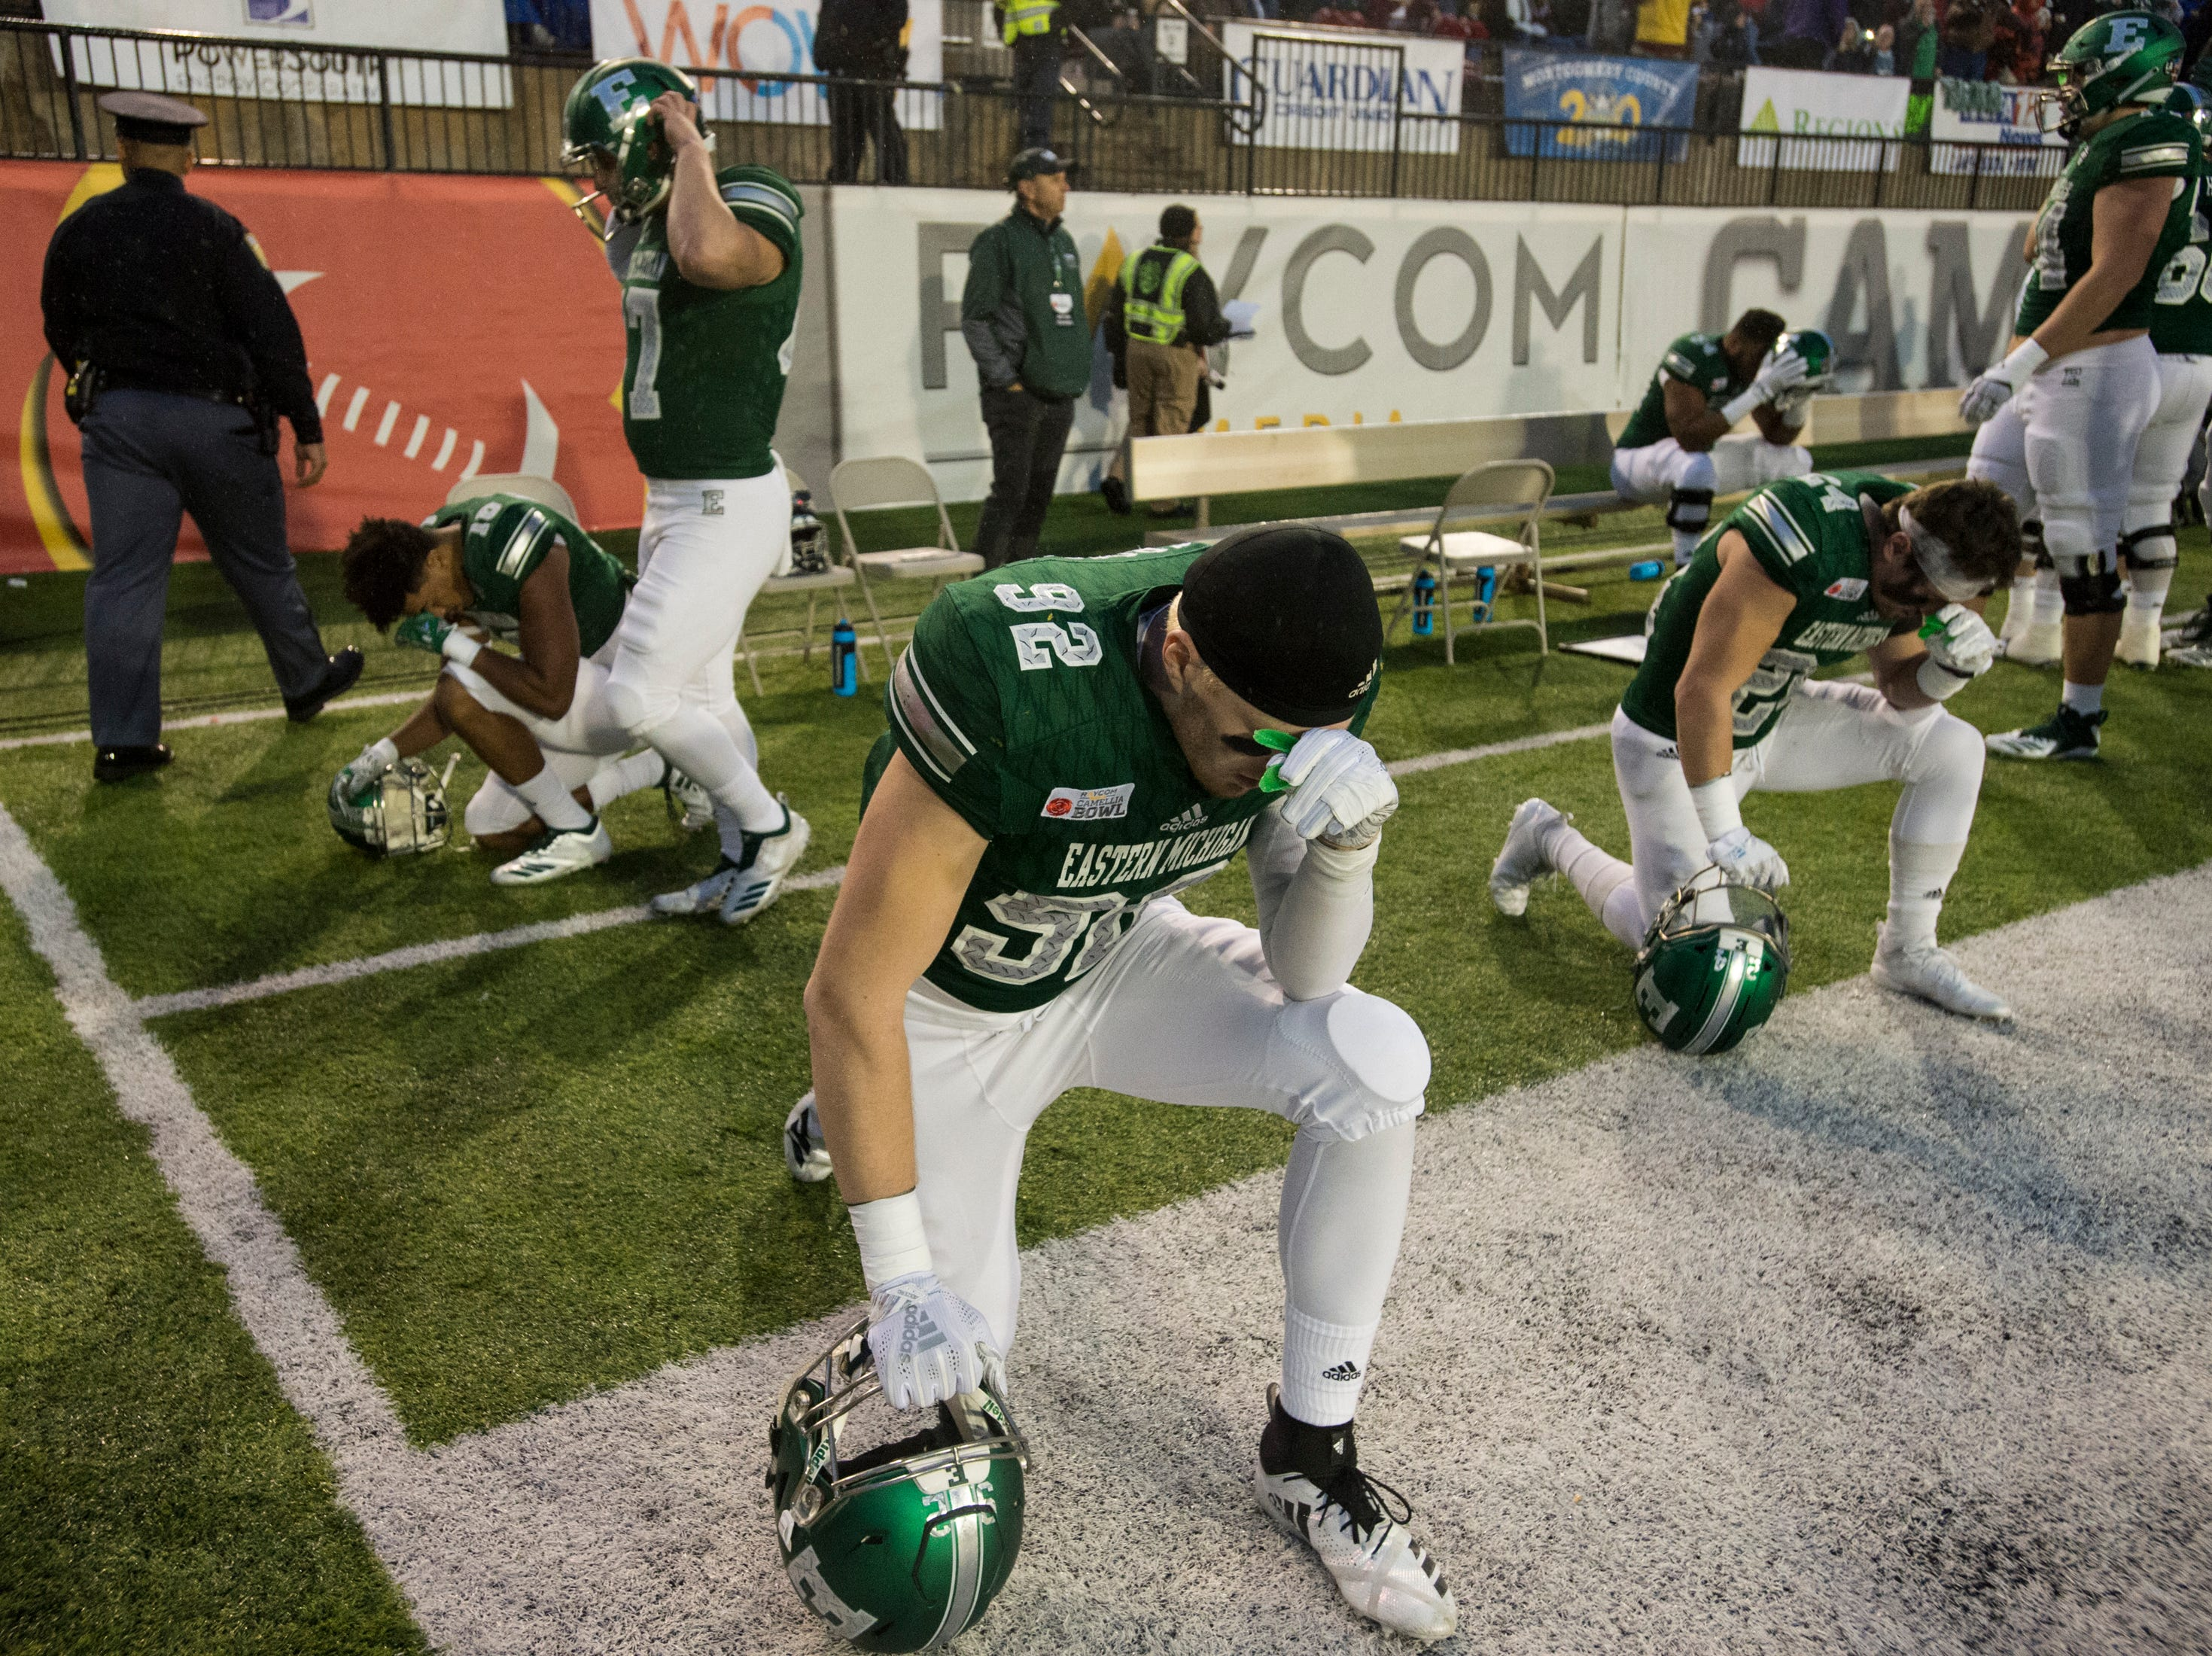 Eastern Michigan players pray before the Camellia Bowl at Cramton Bowl in Montgomery, Ala., on Saturday, Dec. 15, 2018. Georgia Southern leads Eastern Michigan 17-7 at halftime.